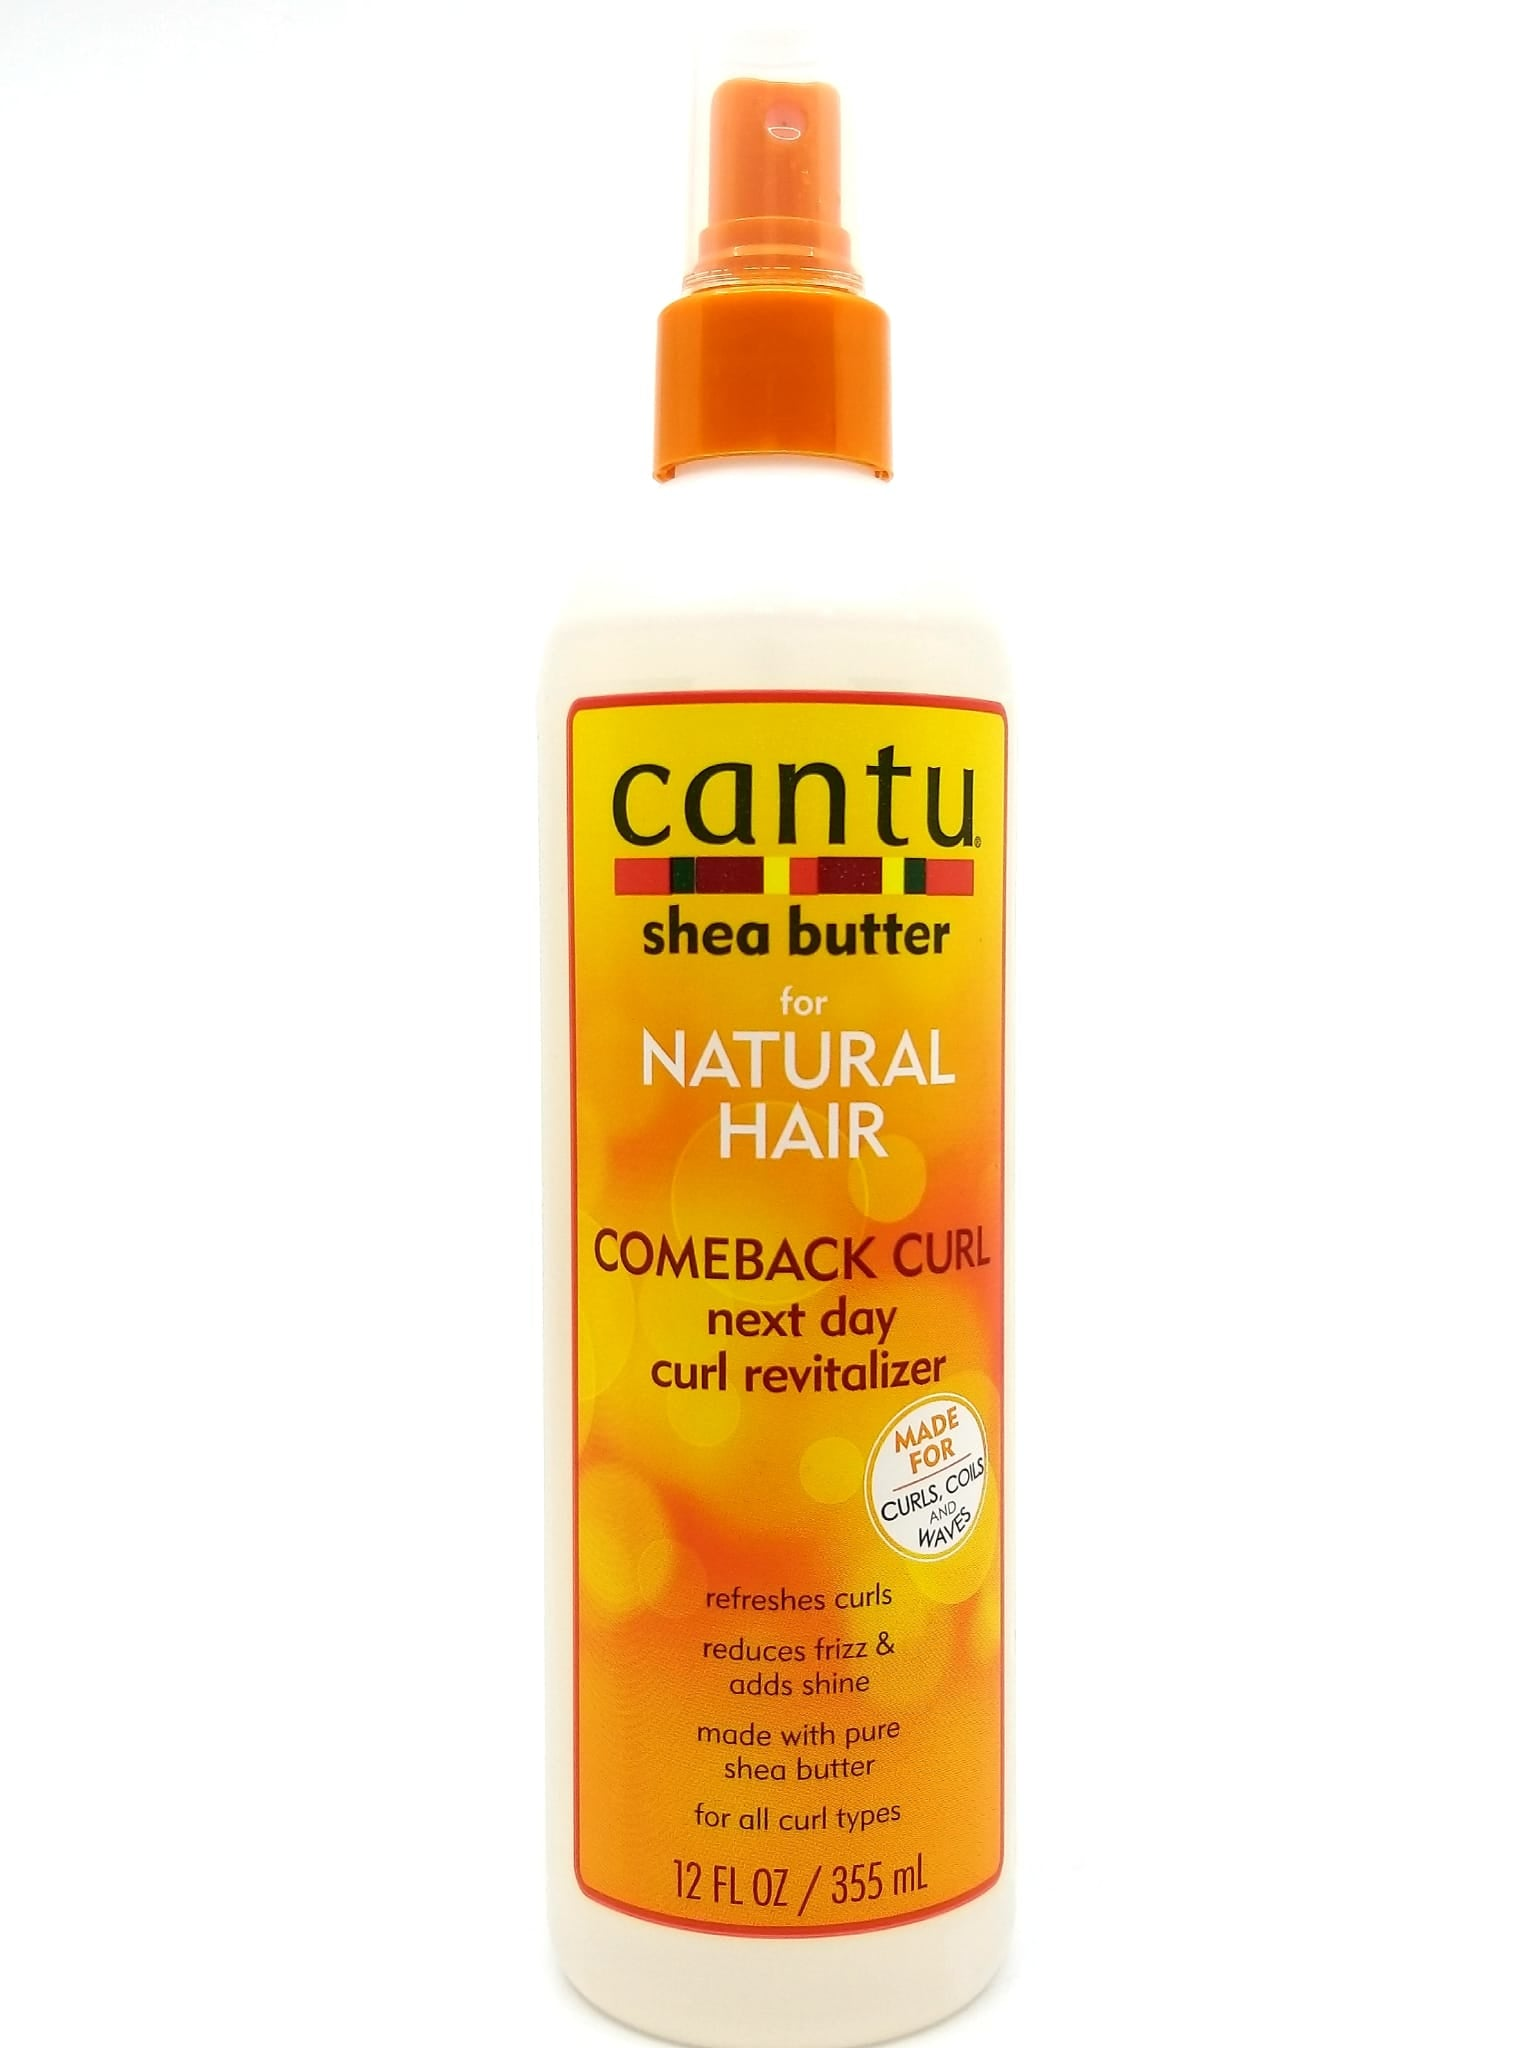 Cantu shea butter hair curl revitalizer